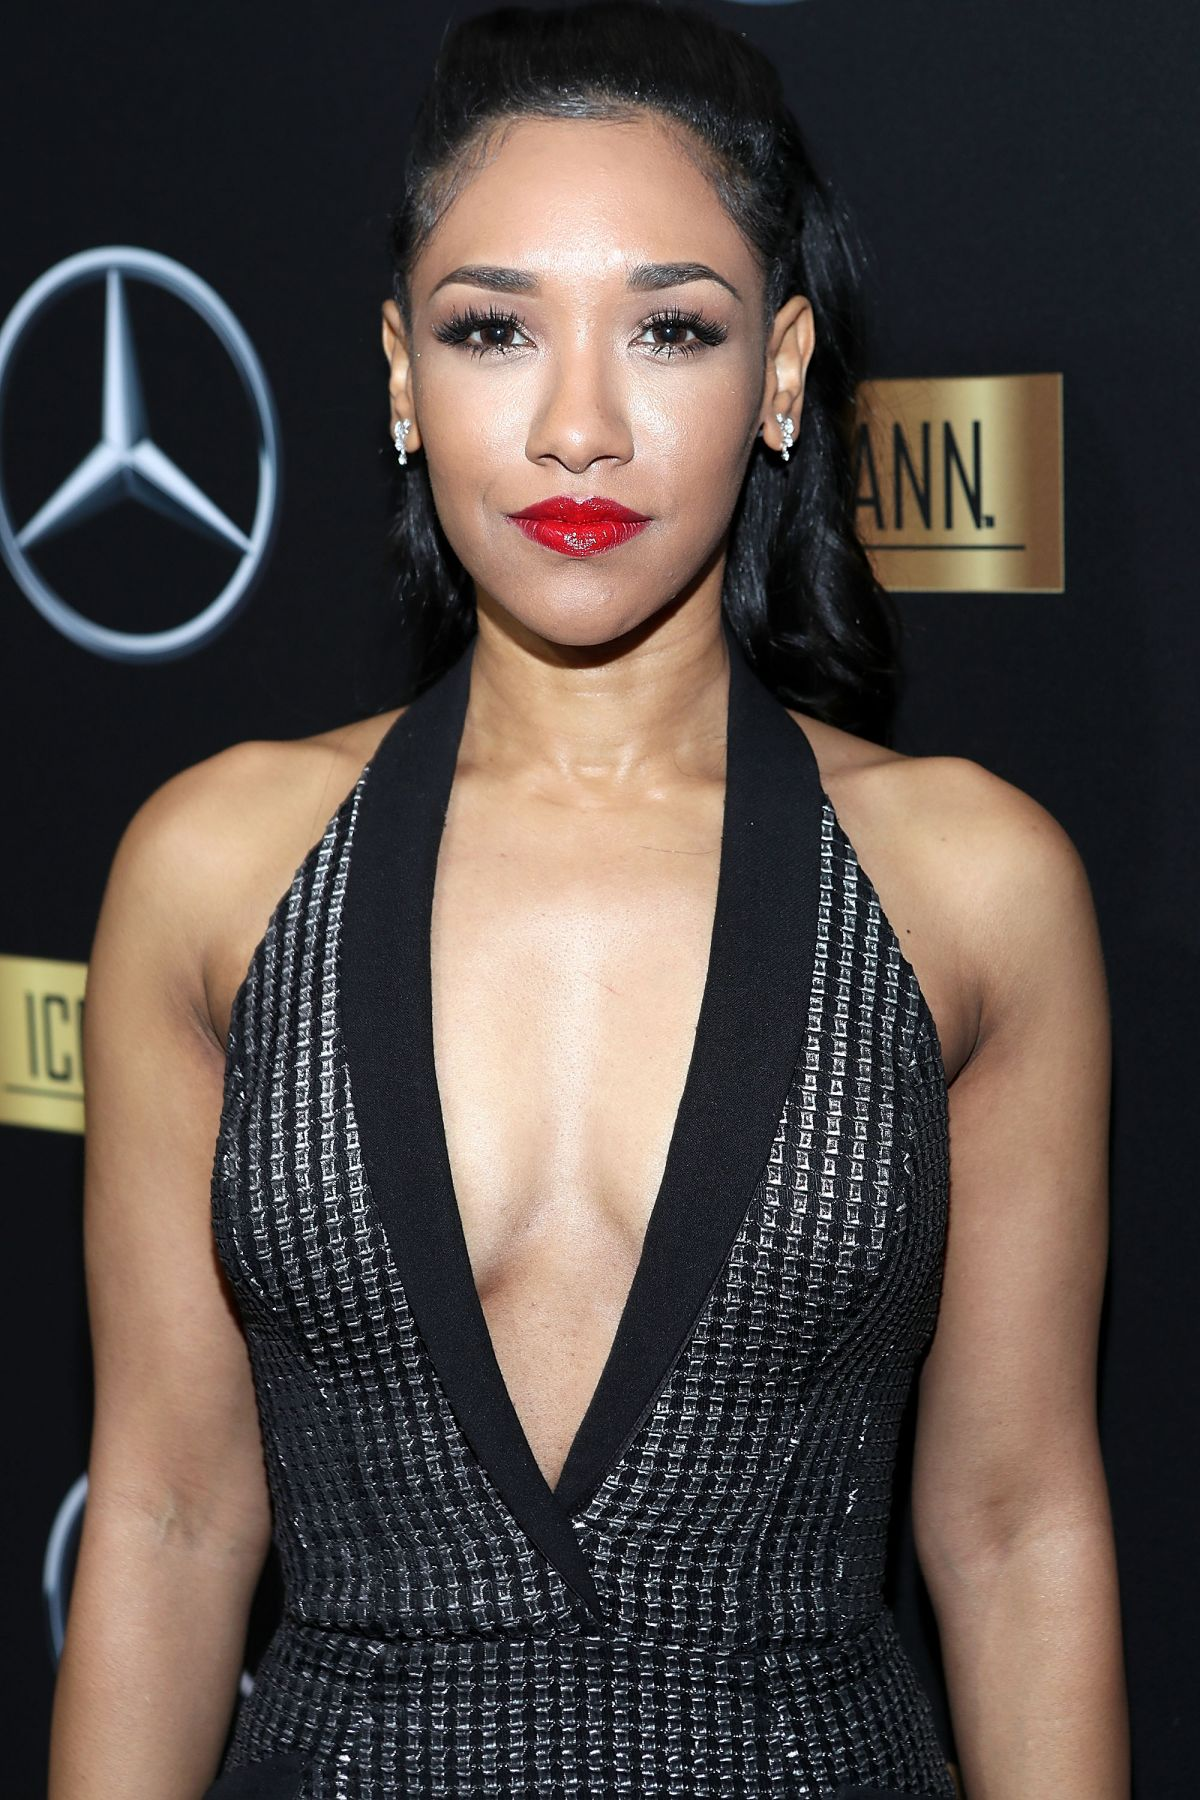 CANDICE PATTON at Mercedes-benz + Icon Mann 2017 Academy Awards Party in Los Angeles 02/26/2017